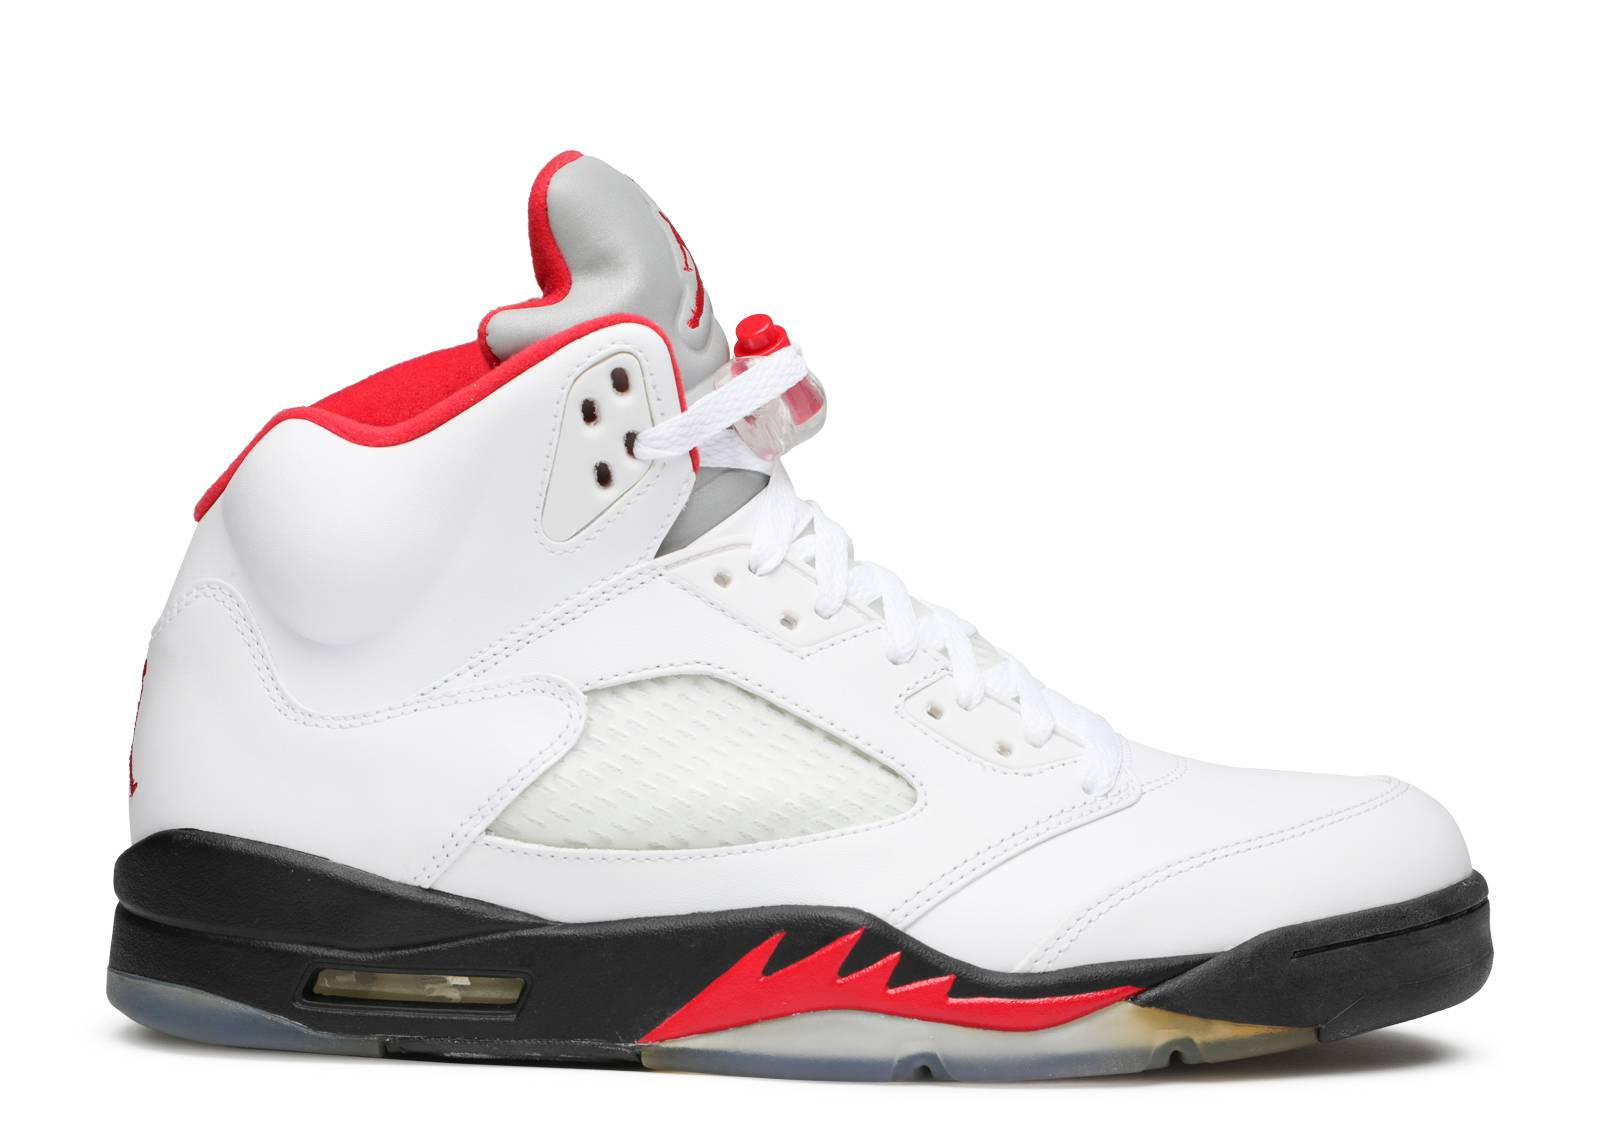 premium selection 15168 2fc66 air jordan 5 retro